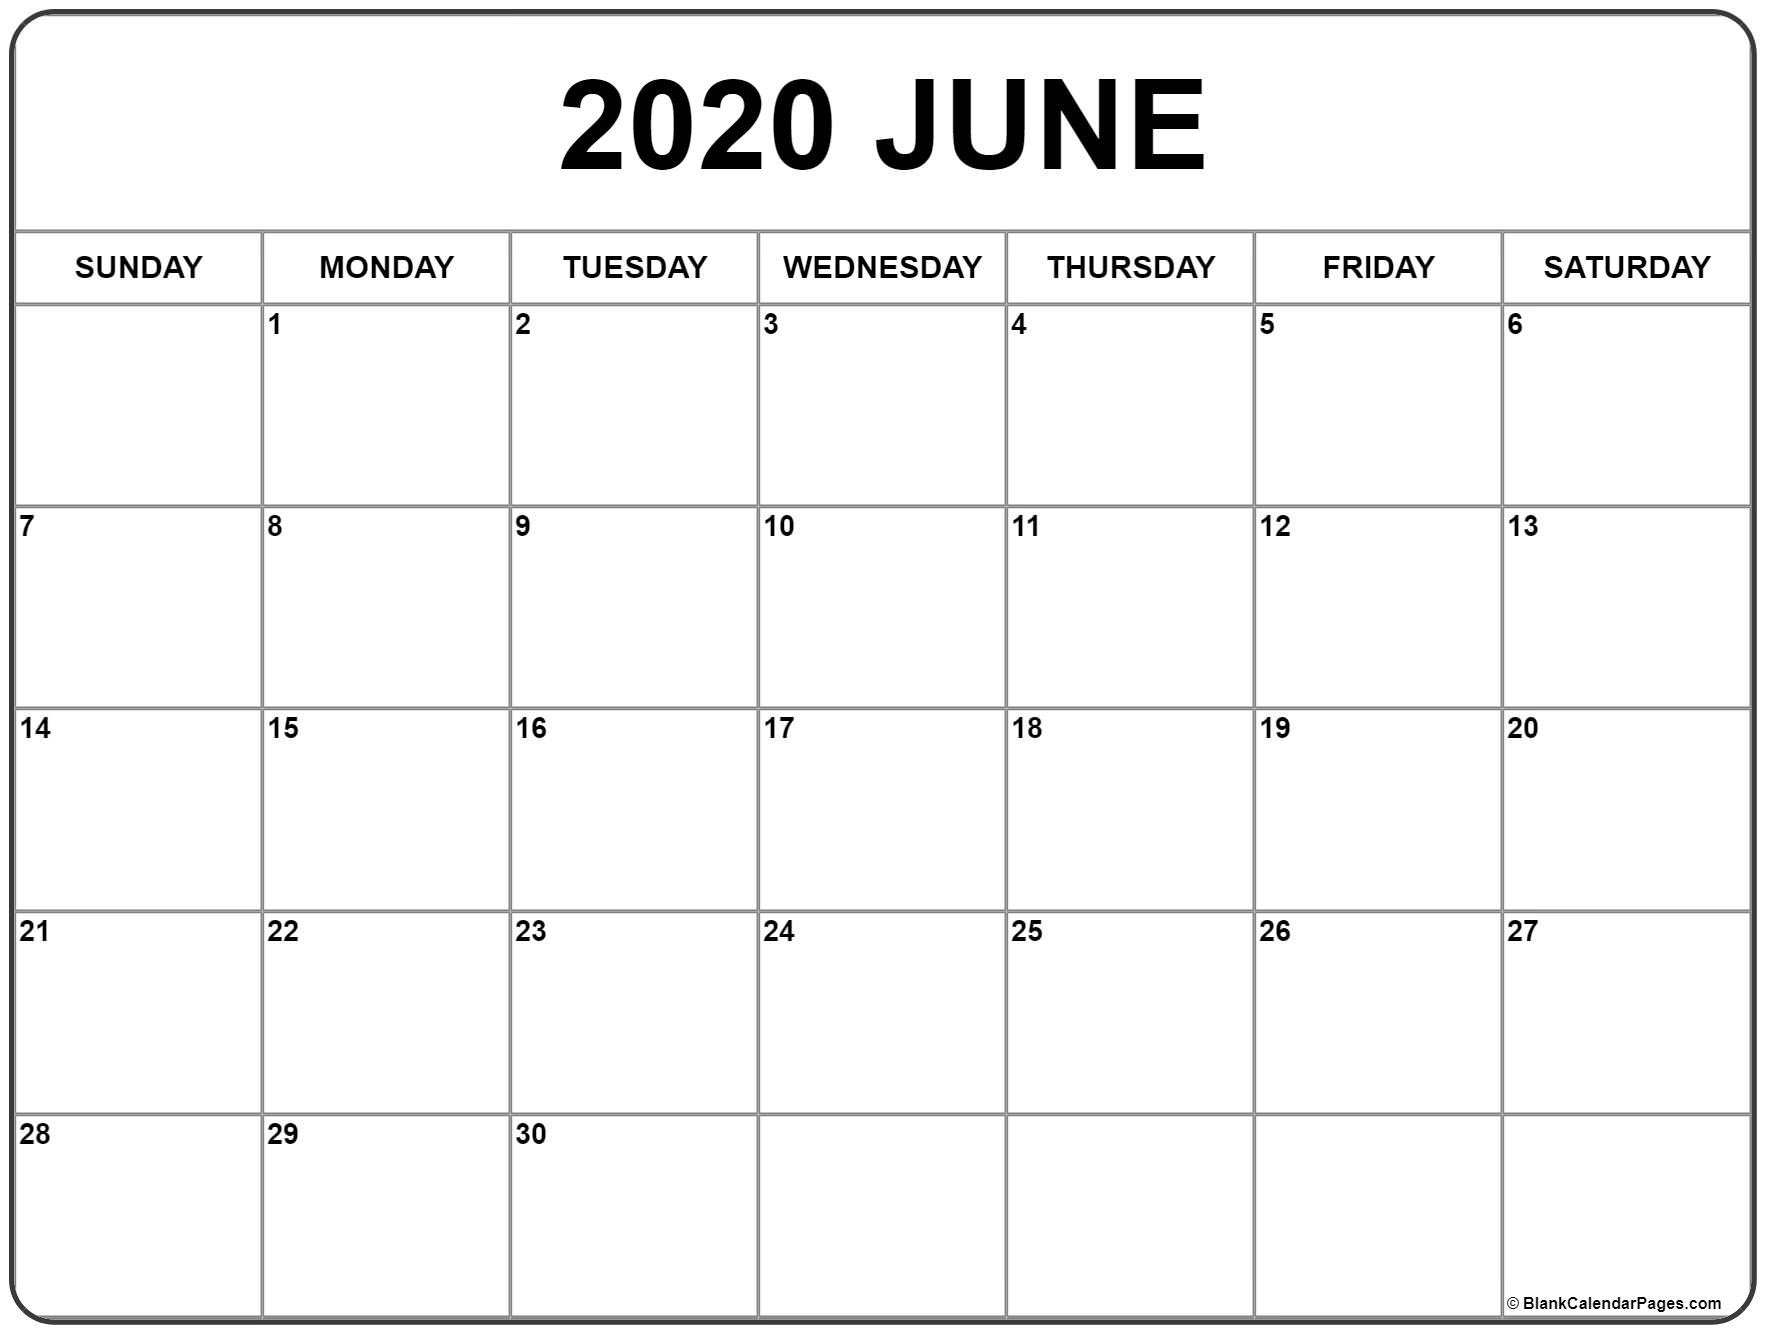 June 2020 Calendar | Free Printable Monthly Calendars-Blank Printable Calendar 2020 June